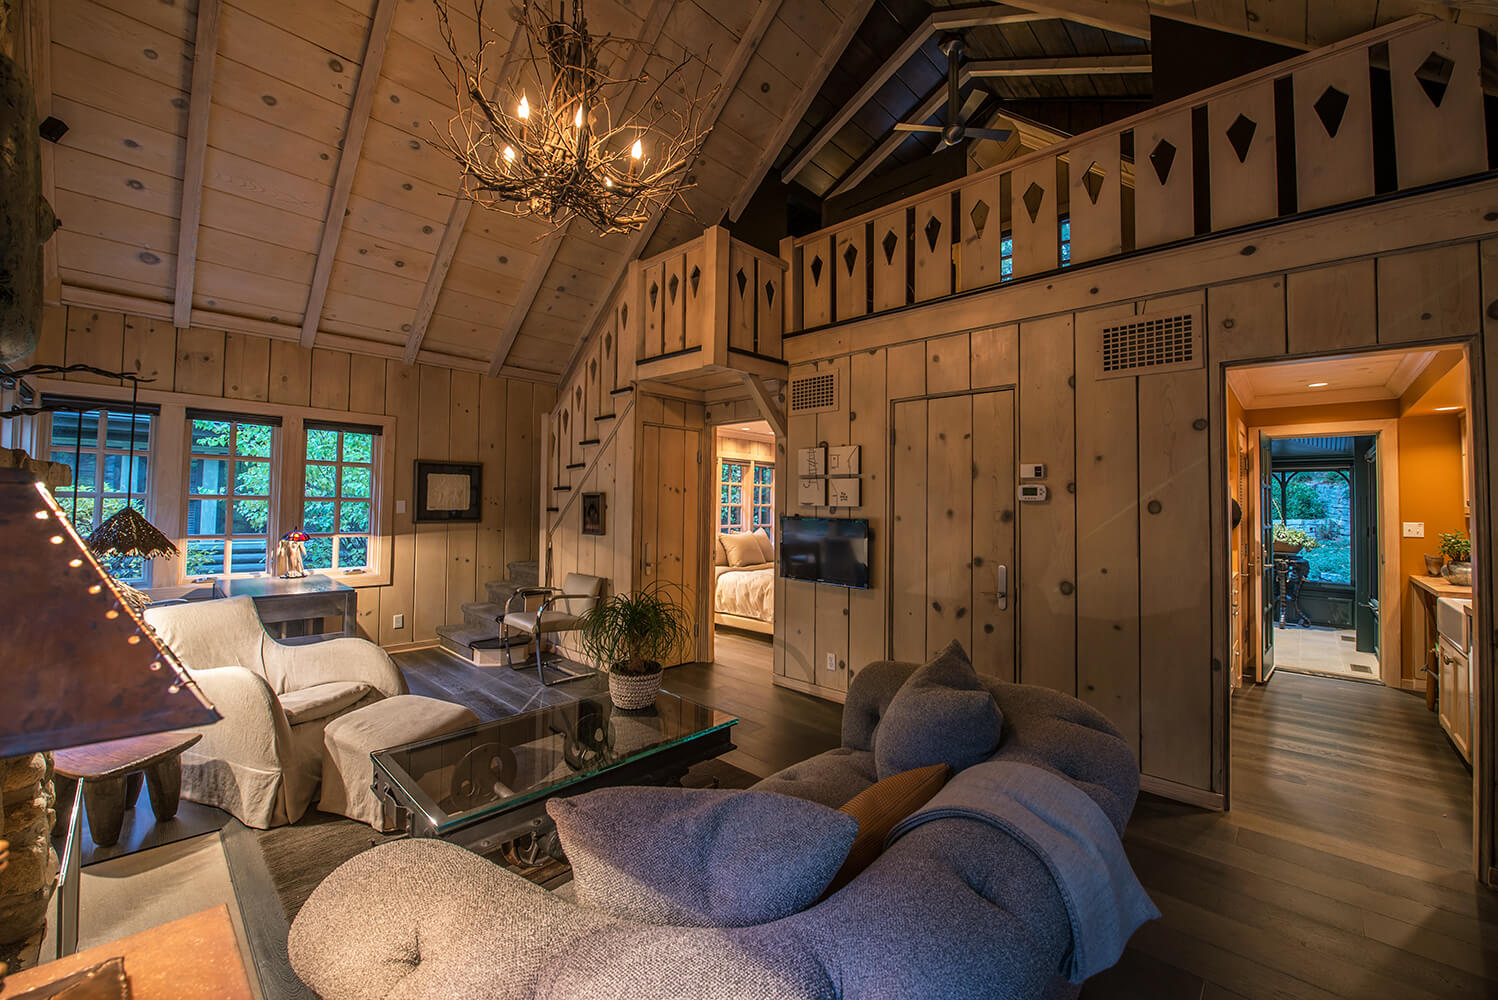 Michigan, Indiana, Cottage, Pine Paneling, Copper roof, Stone Fireplace, Conservatory, interior design, eclectic, modern, antiques, gardens, cabin, stucco, shingles, copper, stone patio, linen, slipcover